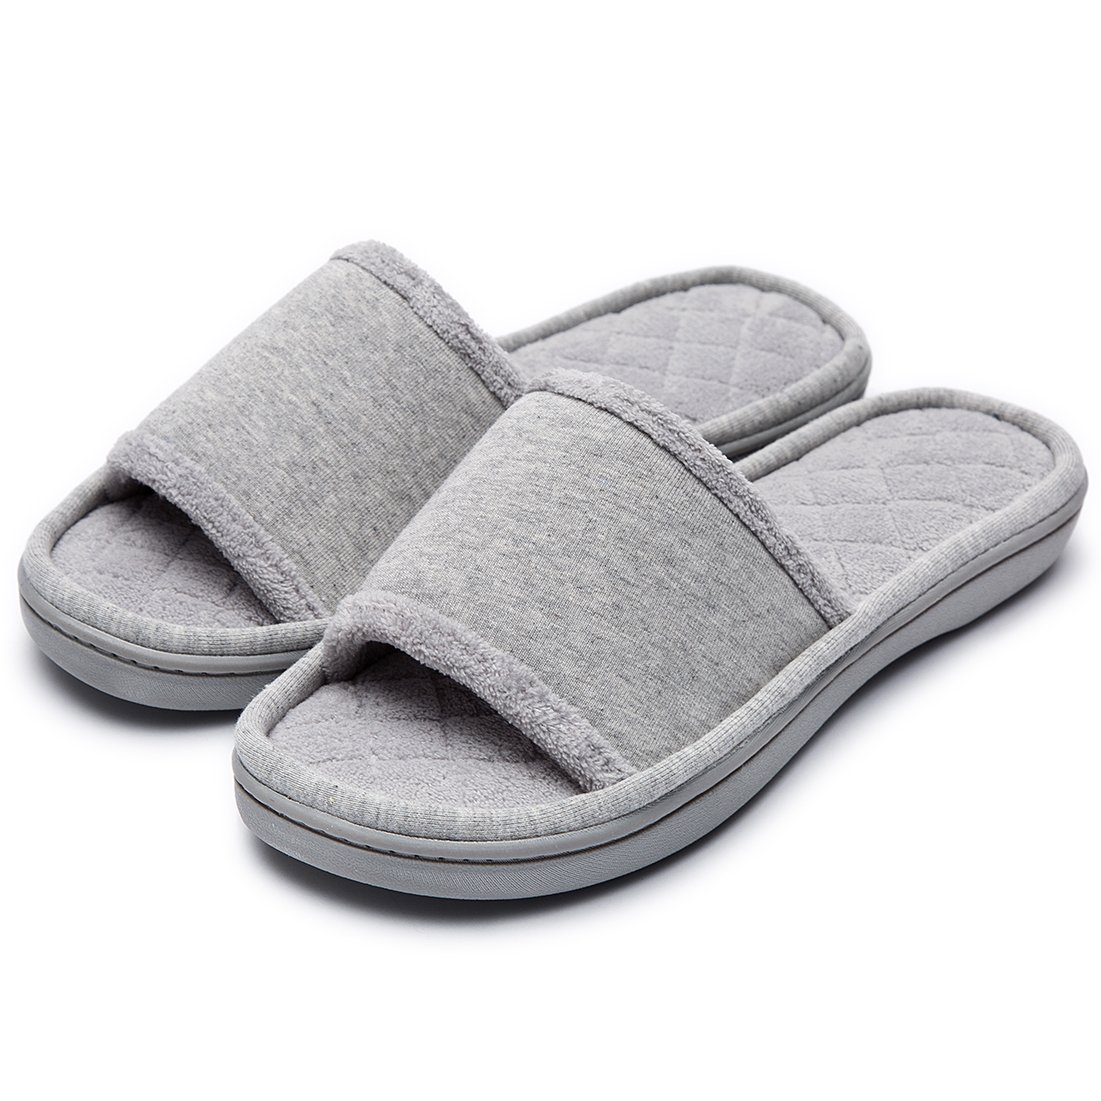 Women's Comfort Memory Foam Cotton House Slippers Spa Shoes w/Fleece Lining & Anti-Skid Rubber Sole (Medium / 7-8 B(M) US, Gray)